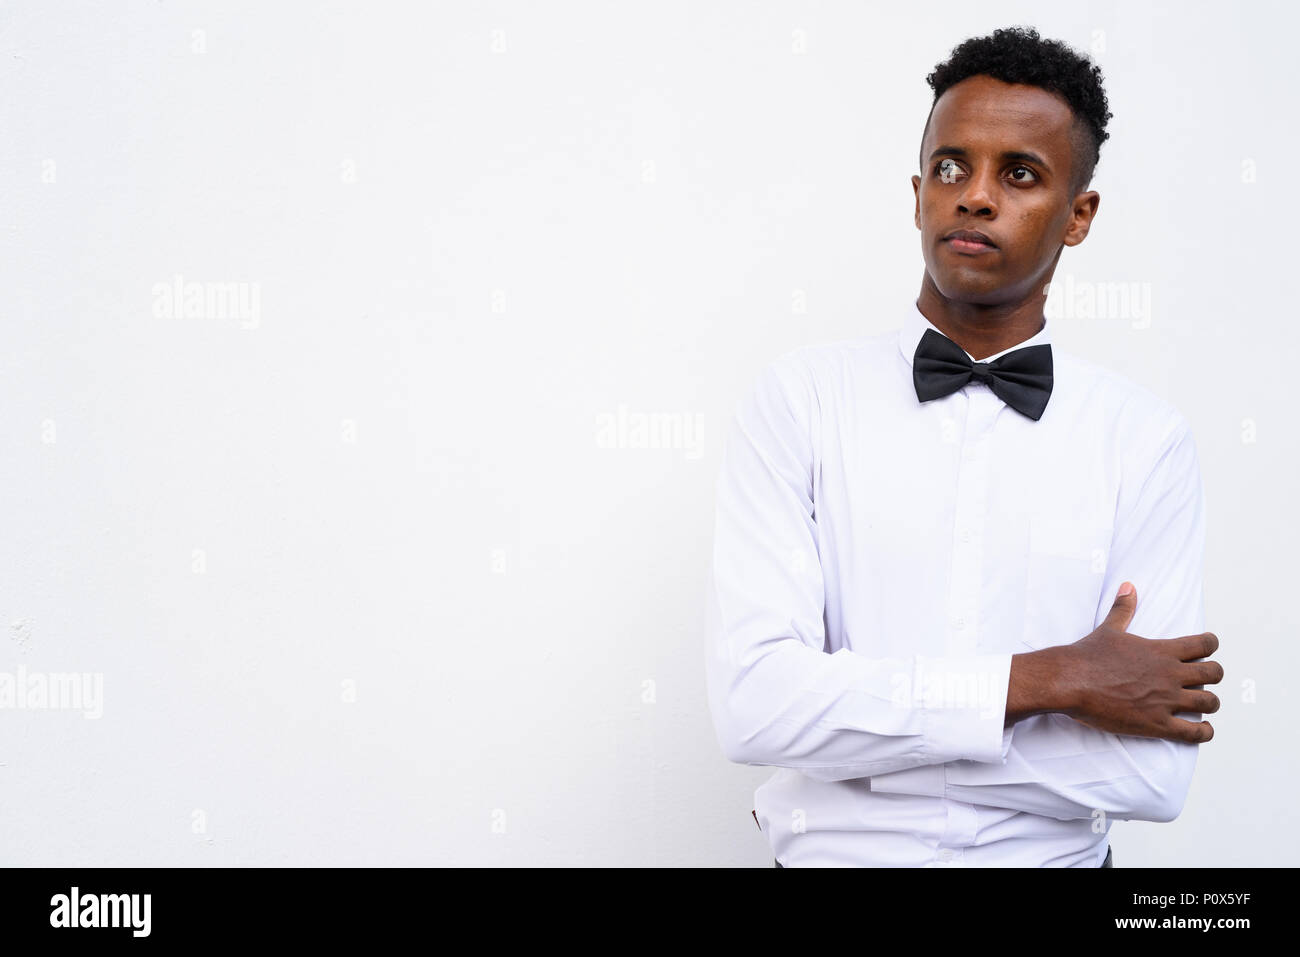 Young handsome African businessman wearing bow tie against white - Stock Image